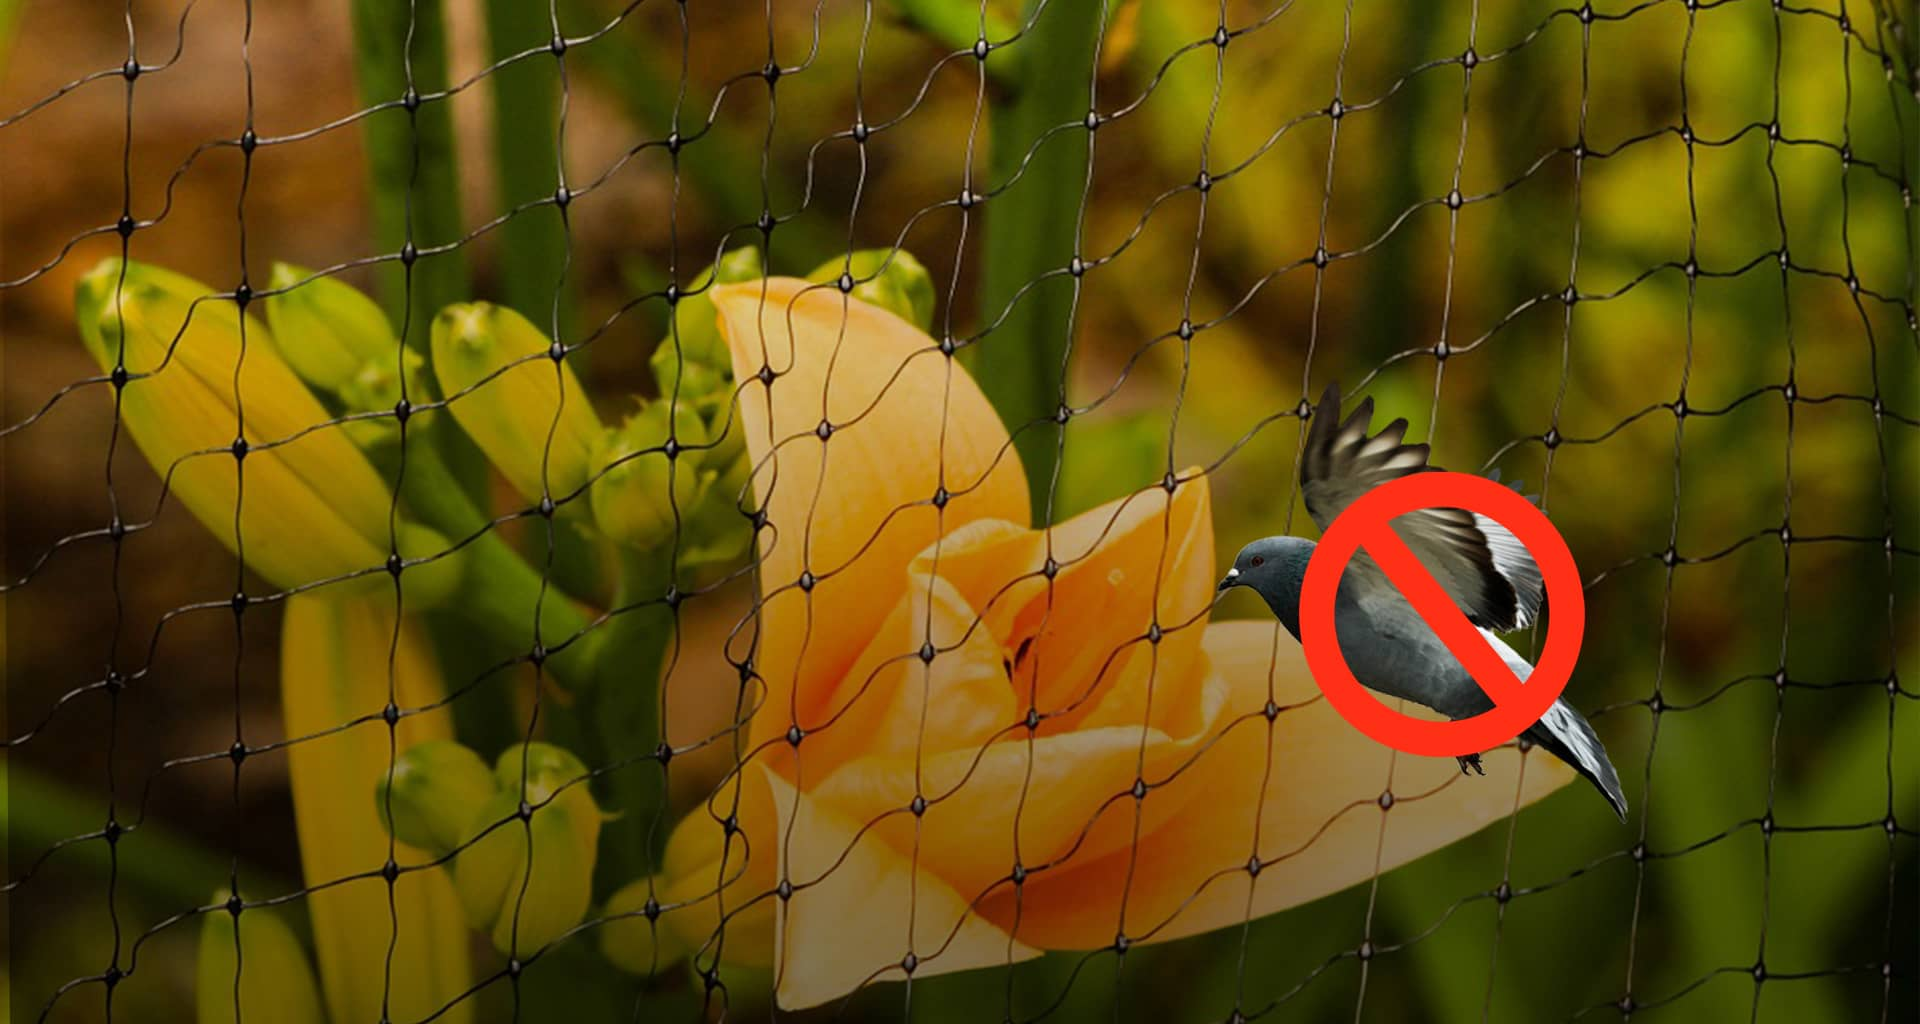 Bird Netting in Pune